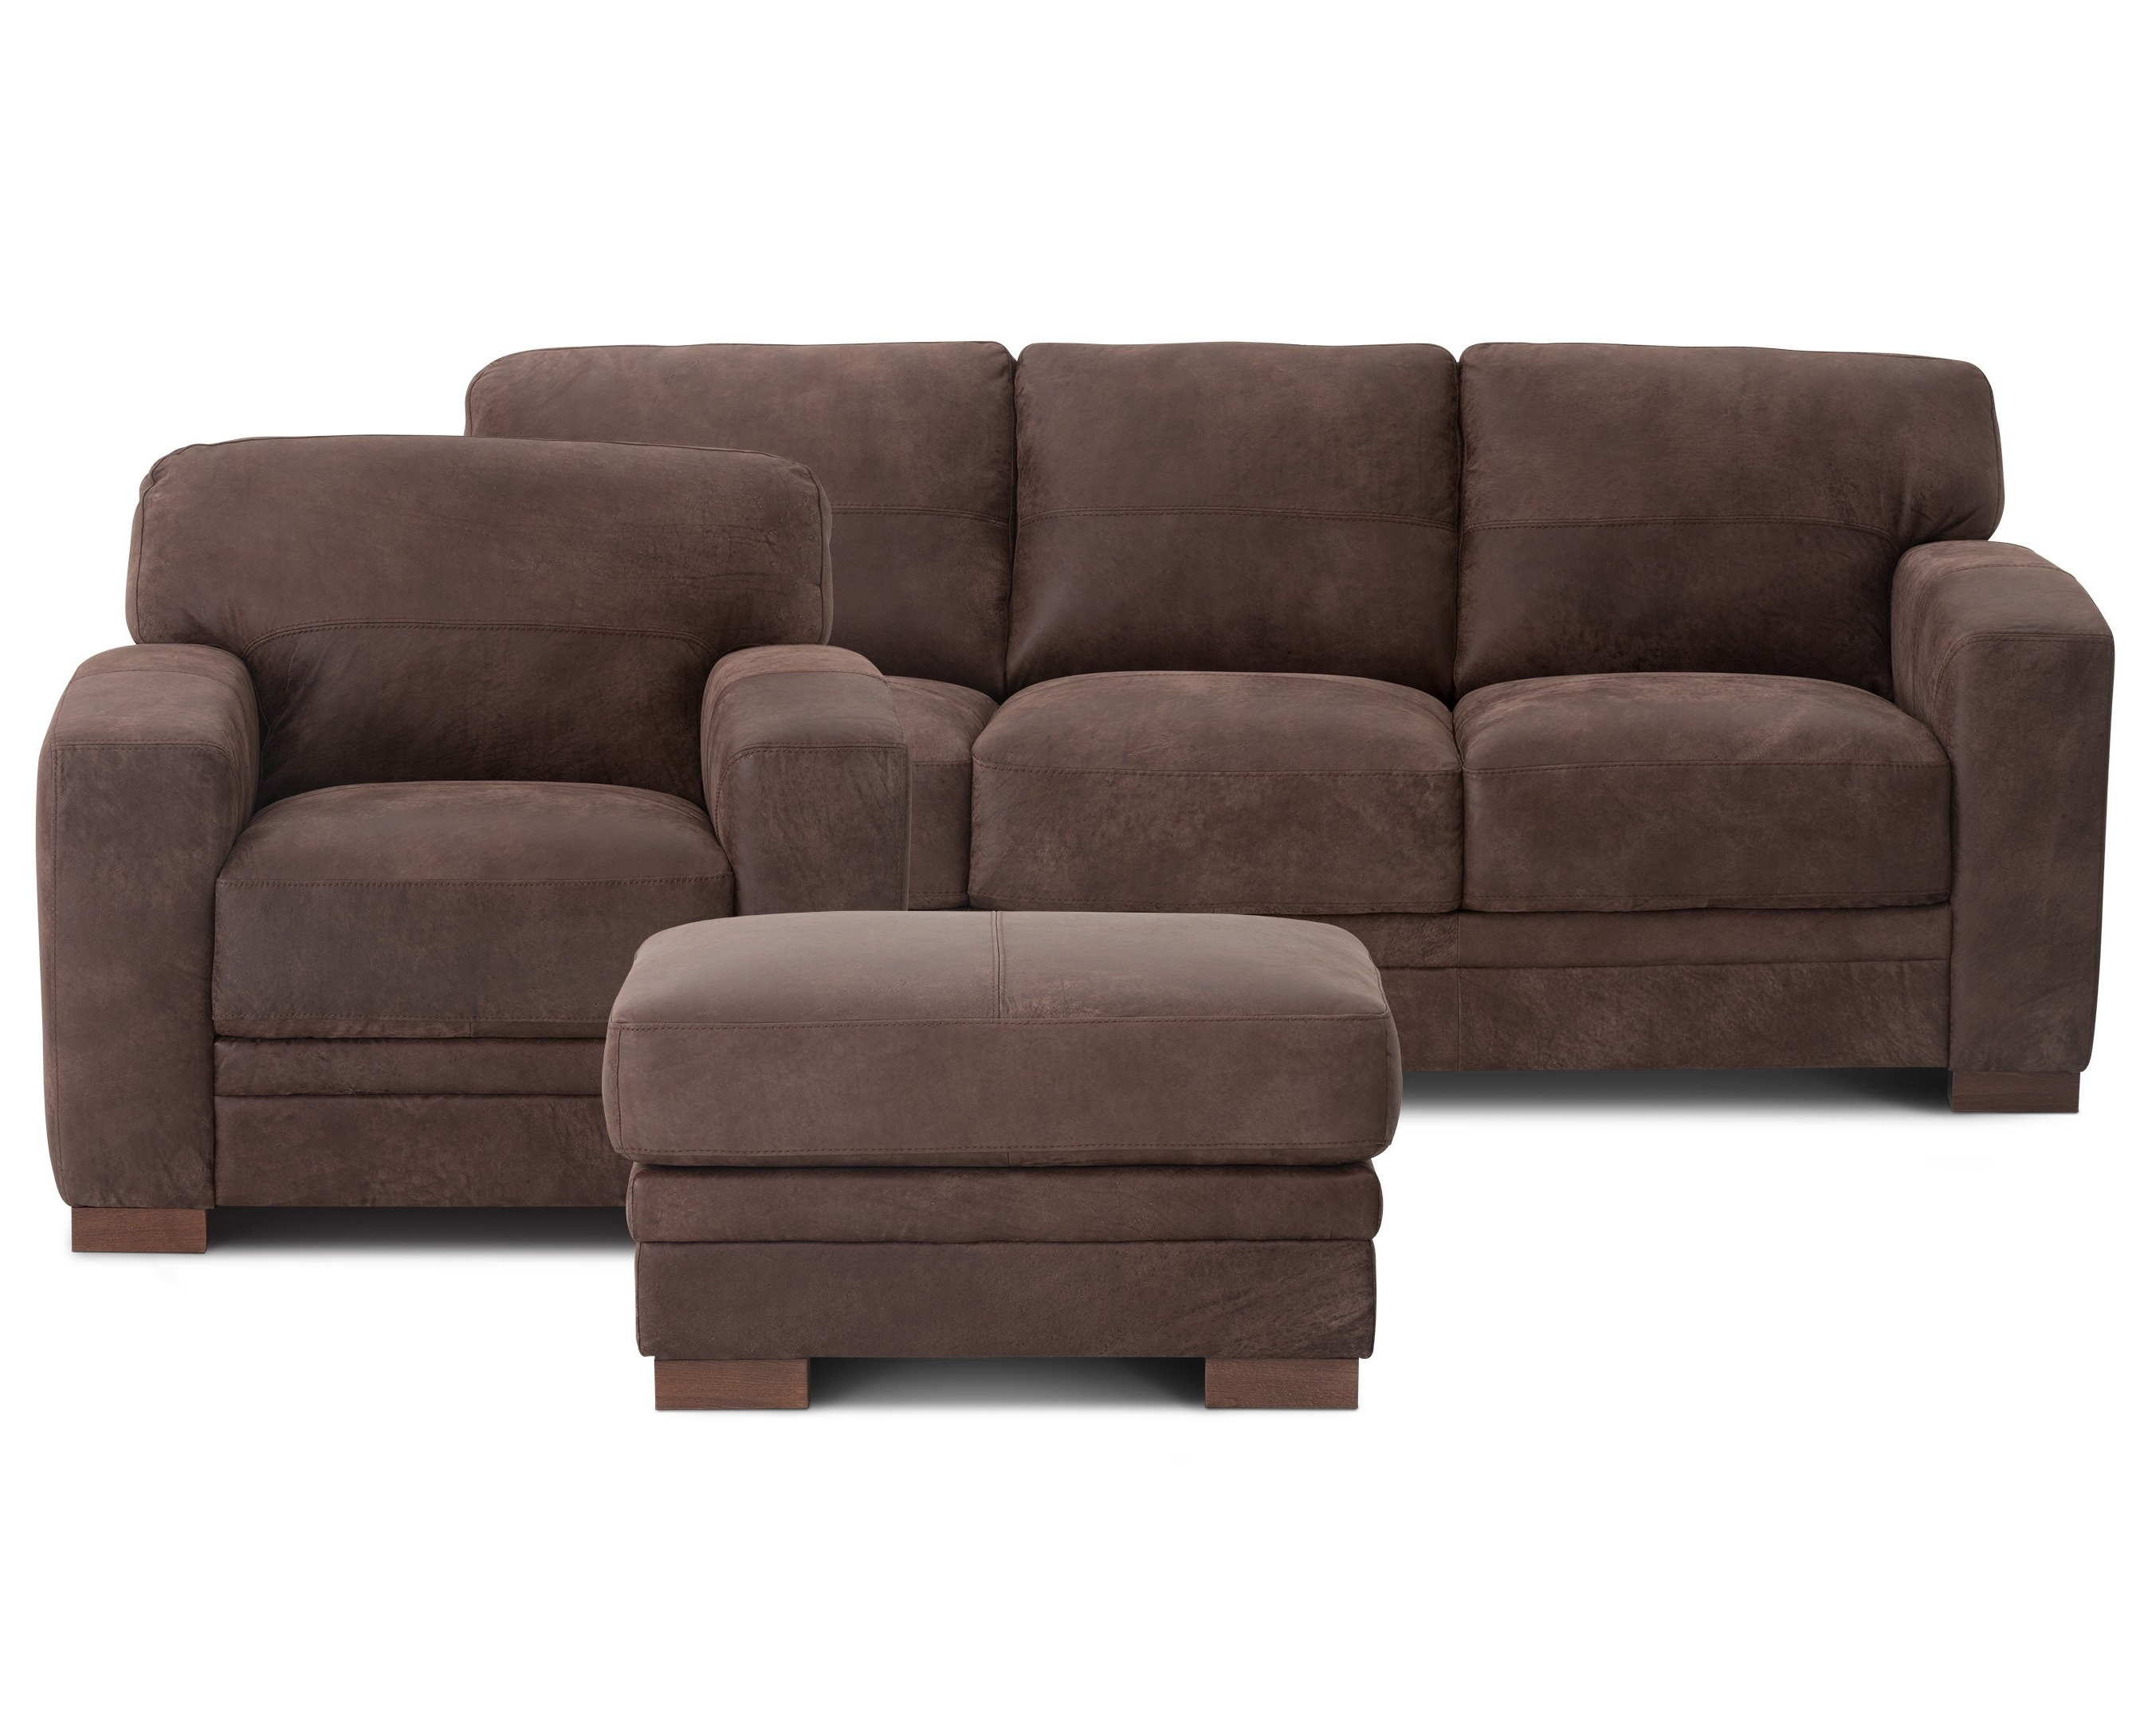 Furniture Row Sectional Sofas Inside Favorite Alamosa 2 Pc (View 10 of 15)